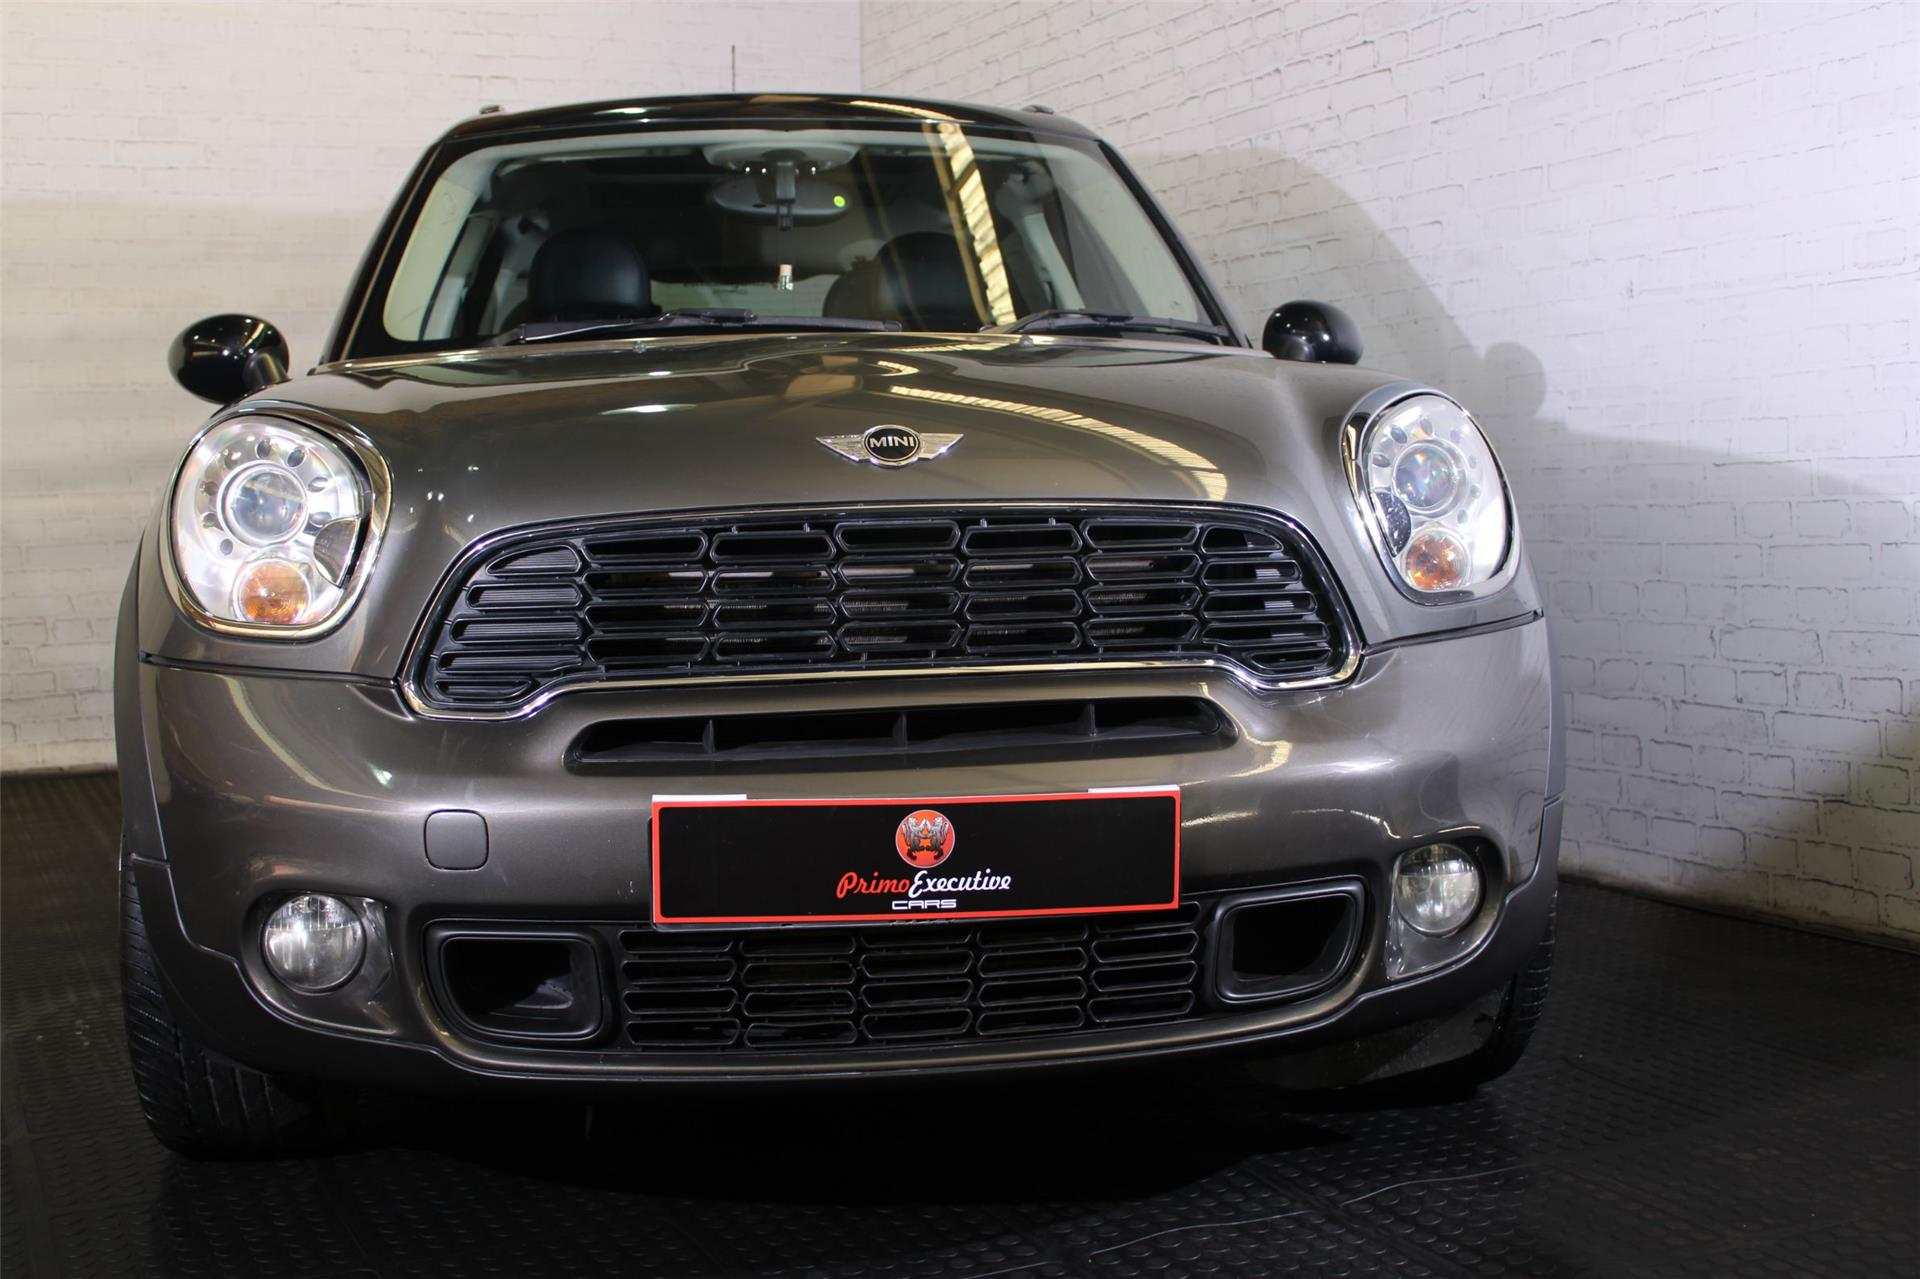 MINI Cooper S Countryman steptronic